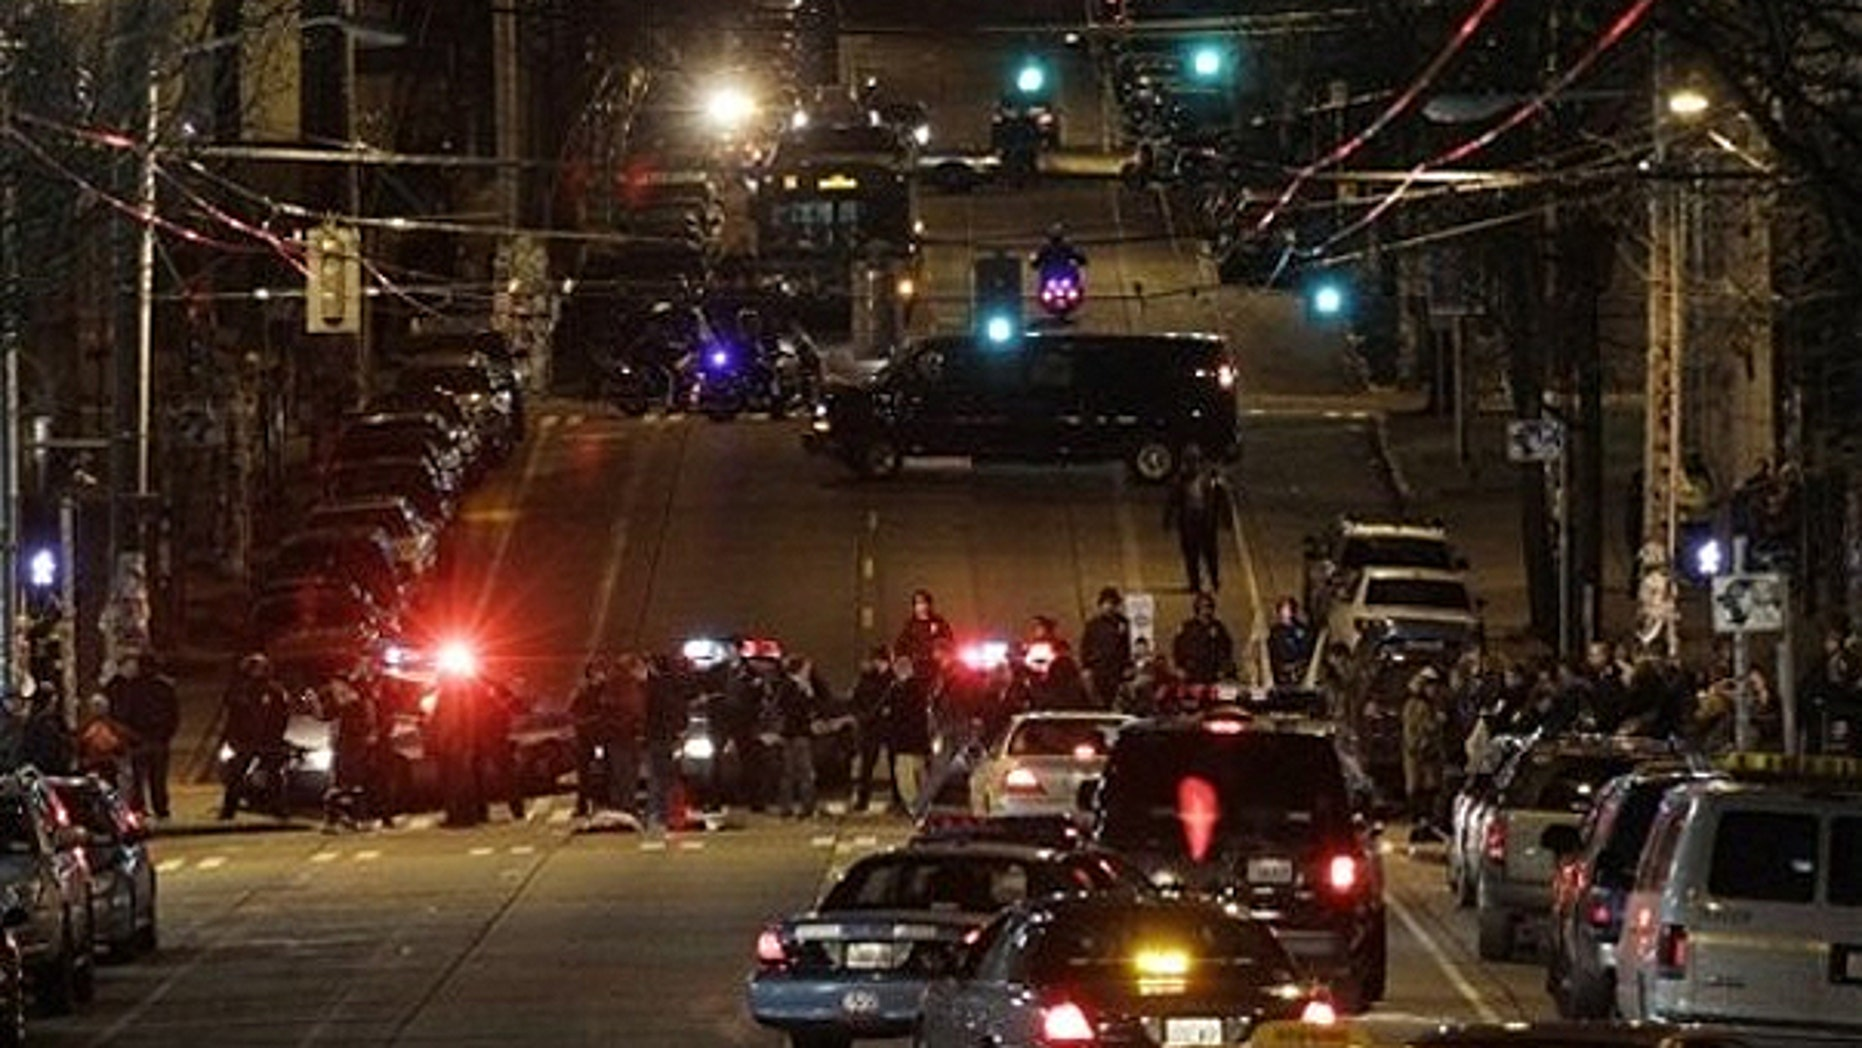 Feb. 16: Seattle Police stand down protestors who marched to within a block of a precinct station in Seattle's Capitol Hill neighborhood during a night-time protest march against Seattle Police Officer Ian Birk.